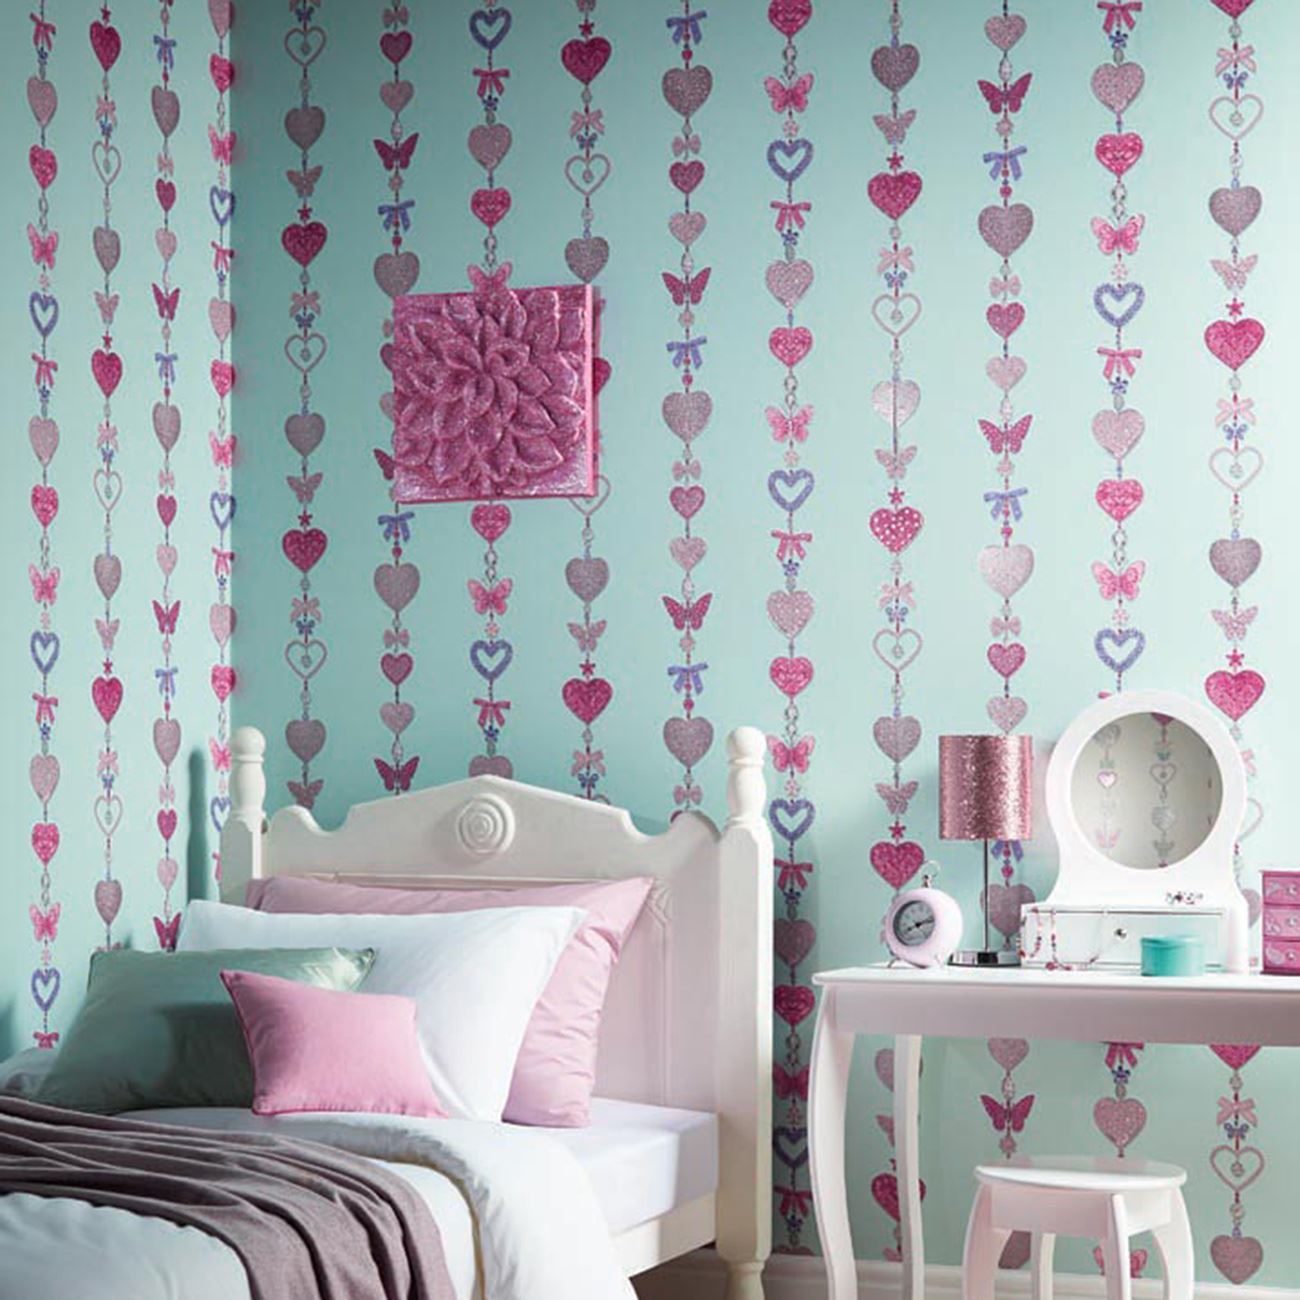 GIRLS WALLPAPER THEMED BEDROOM UNICORN STARS HEART GLITTER